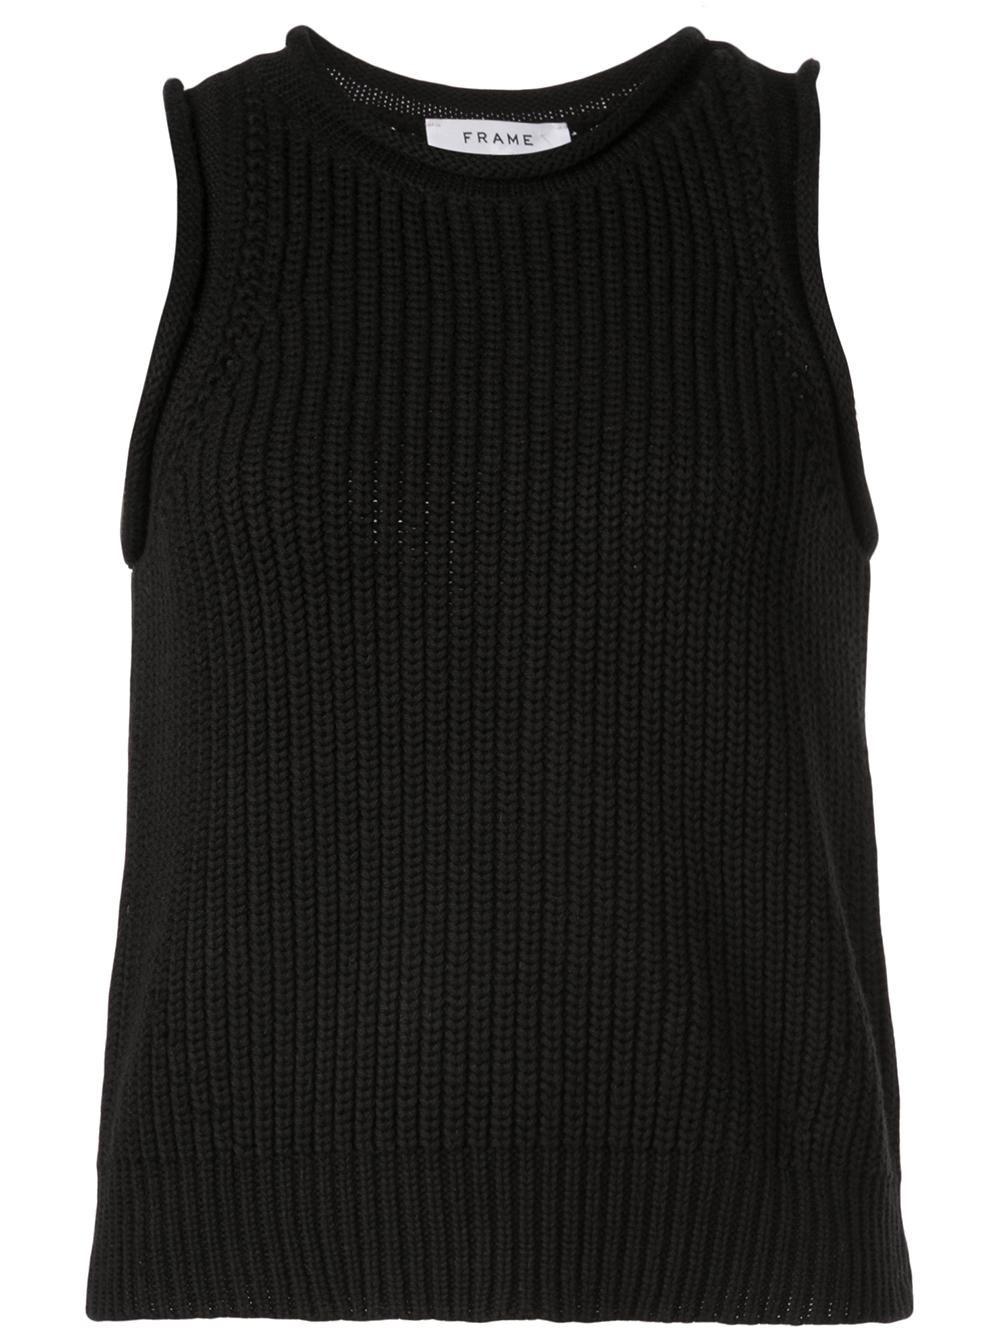 Drop Needle Vest